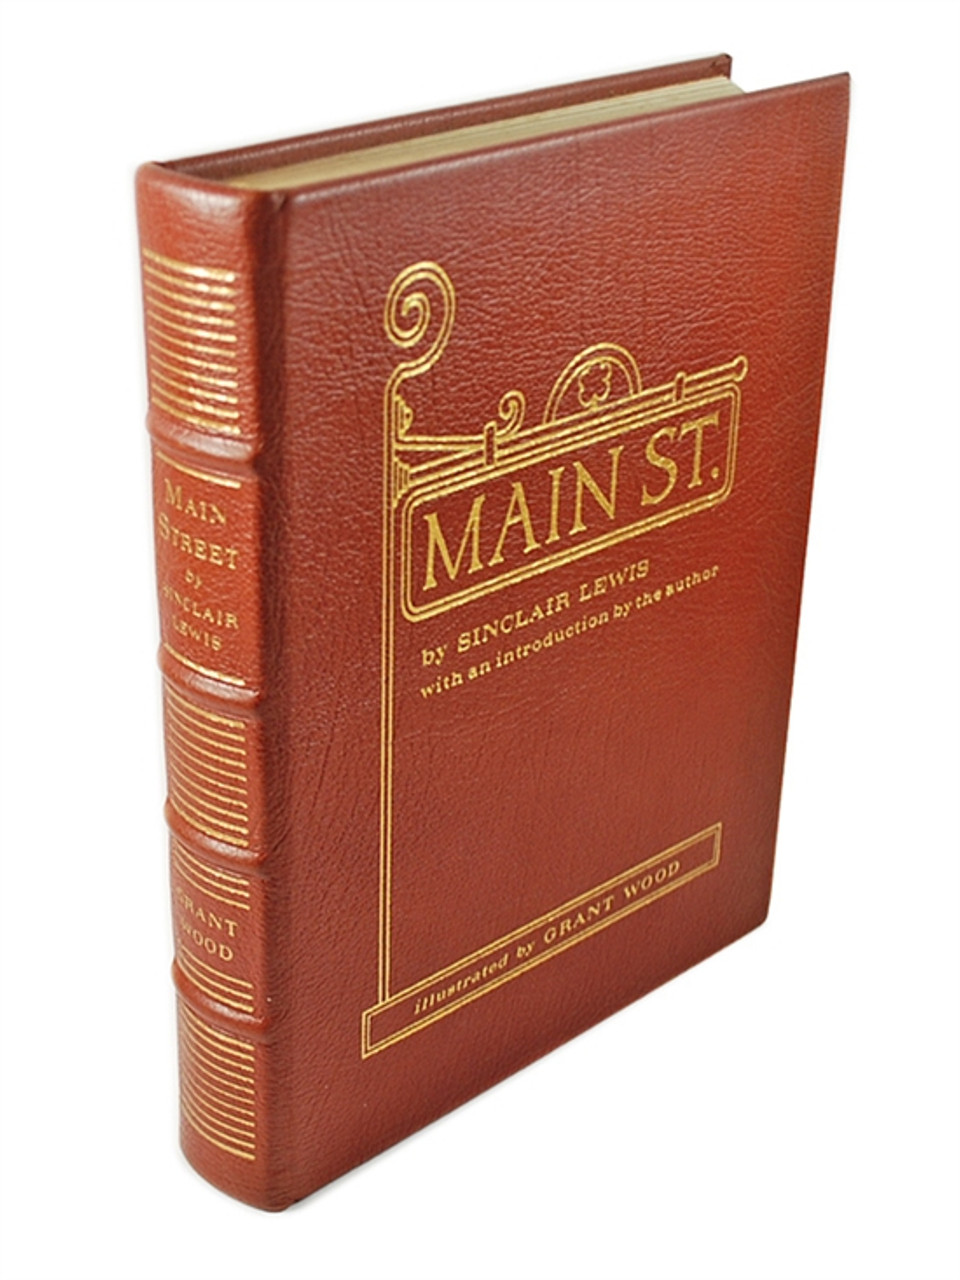 """Easton Press """"Main Street"""" Sinclair Lewis, Leather Bound Limited Collector's Edition w/Notes"""